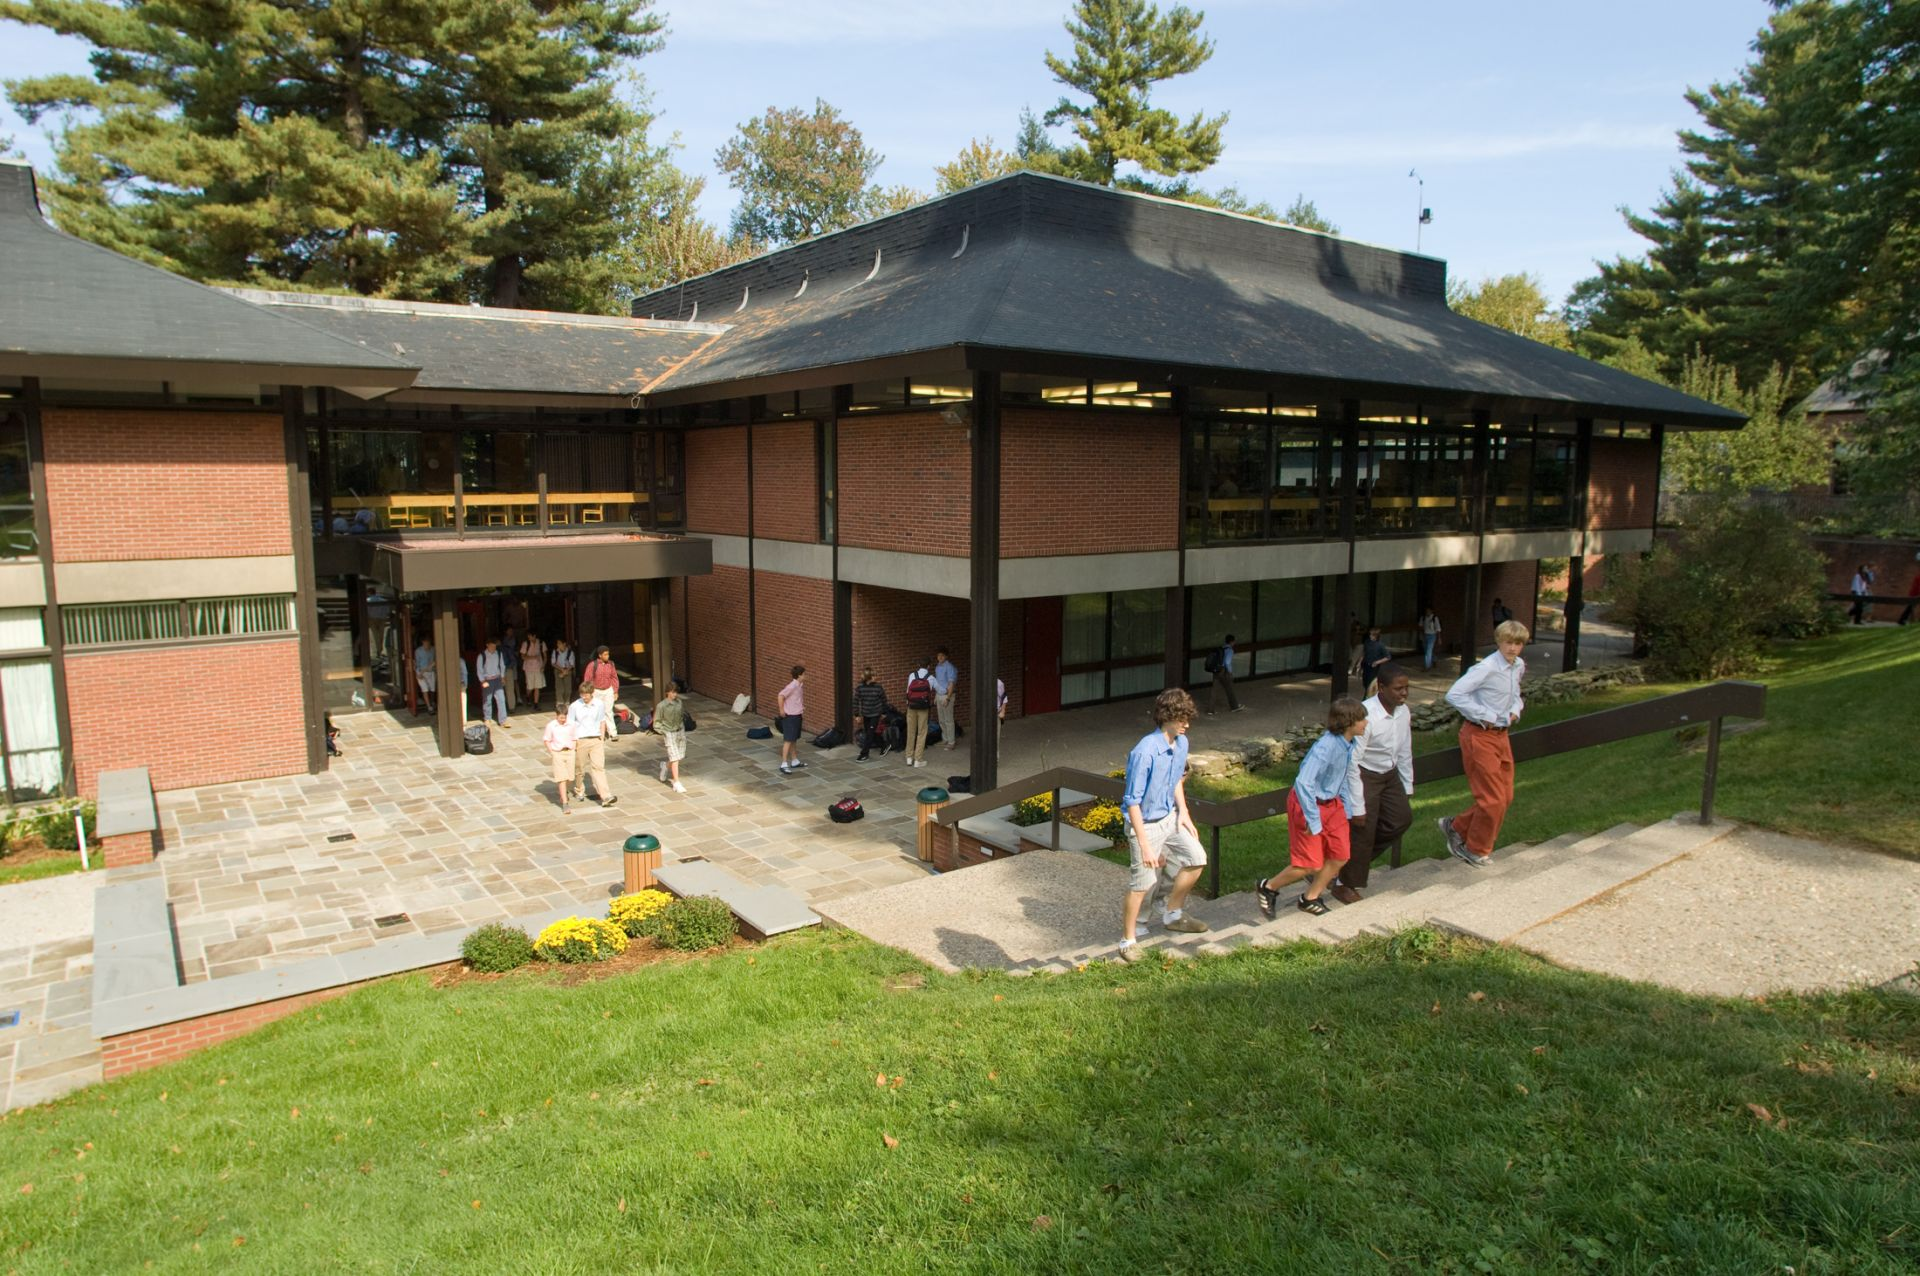 The C. Thurston Chase Learning Center has twenty classrooms, a faculty area, library, computer room, secondary school placement office, and assembly area. The entire school is wired for internet access.